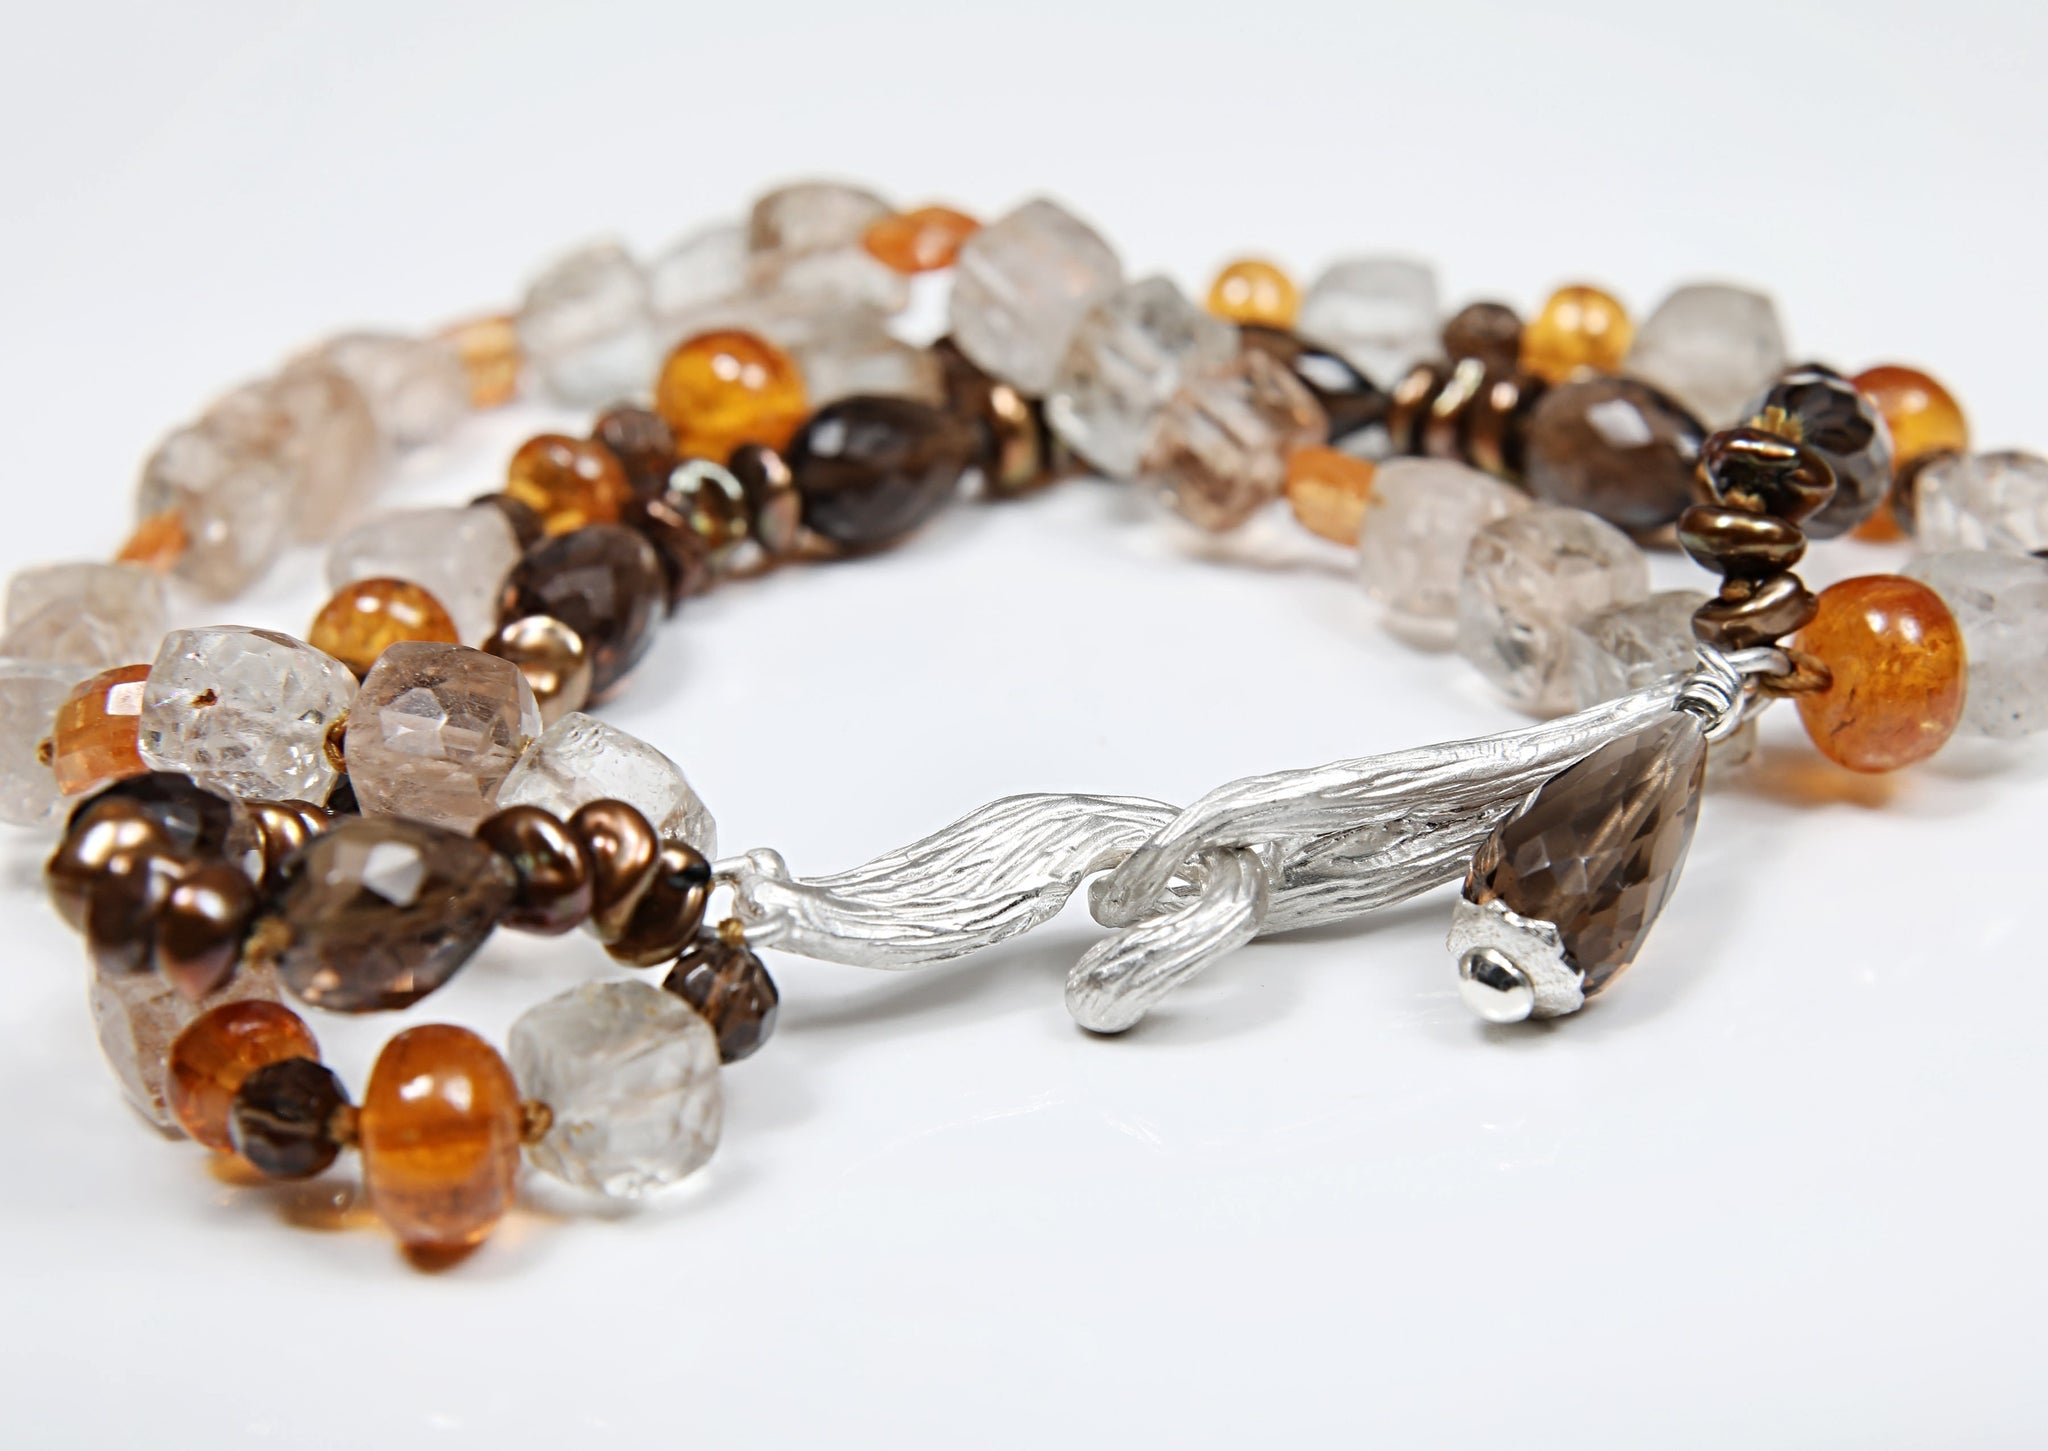 "White Orchid Studios | Made in the USA | Handcrafted couture jewelry inspired by nature. | A three strand bracelet of precious topaz brought to life by smoky quartz, mandarin garnet, and bronze Keshi pearls, all brought together with our signature vanilla bean clasp in sterling. 7.75"" $757"